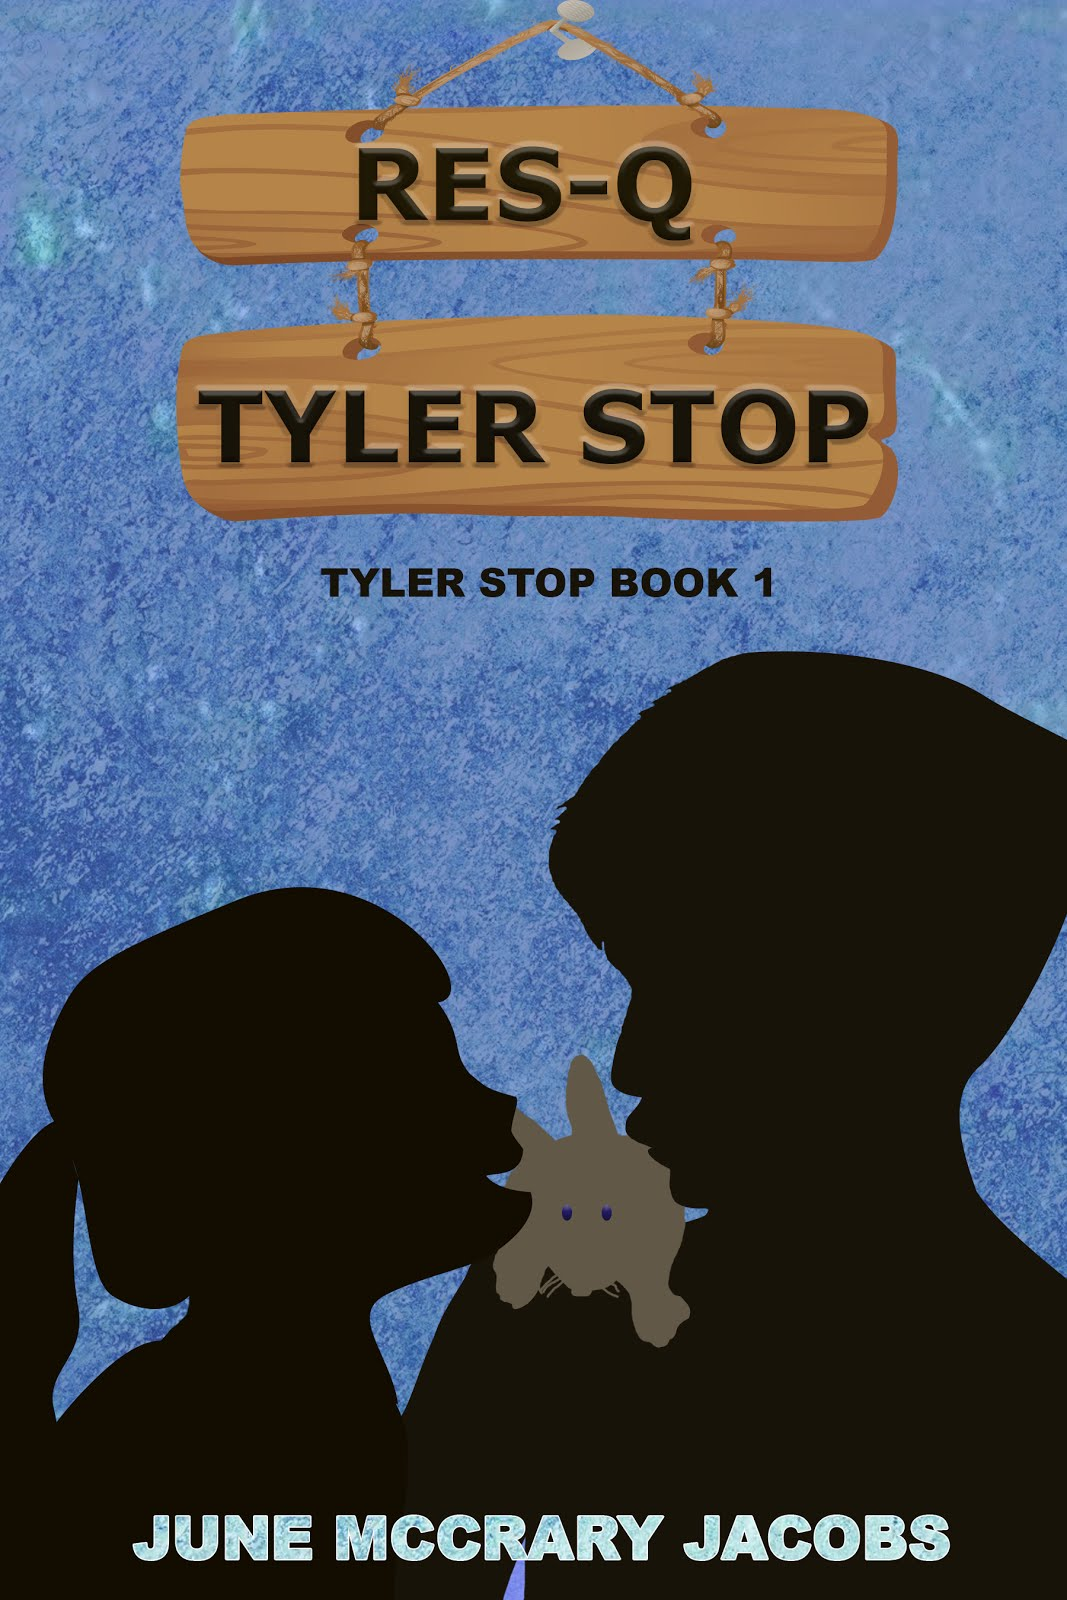 BUY THE PAPERBOOK OF 'RES-Q TYLER STOP'